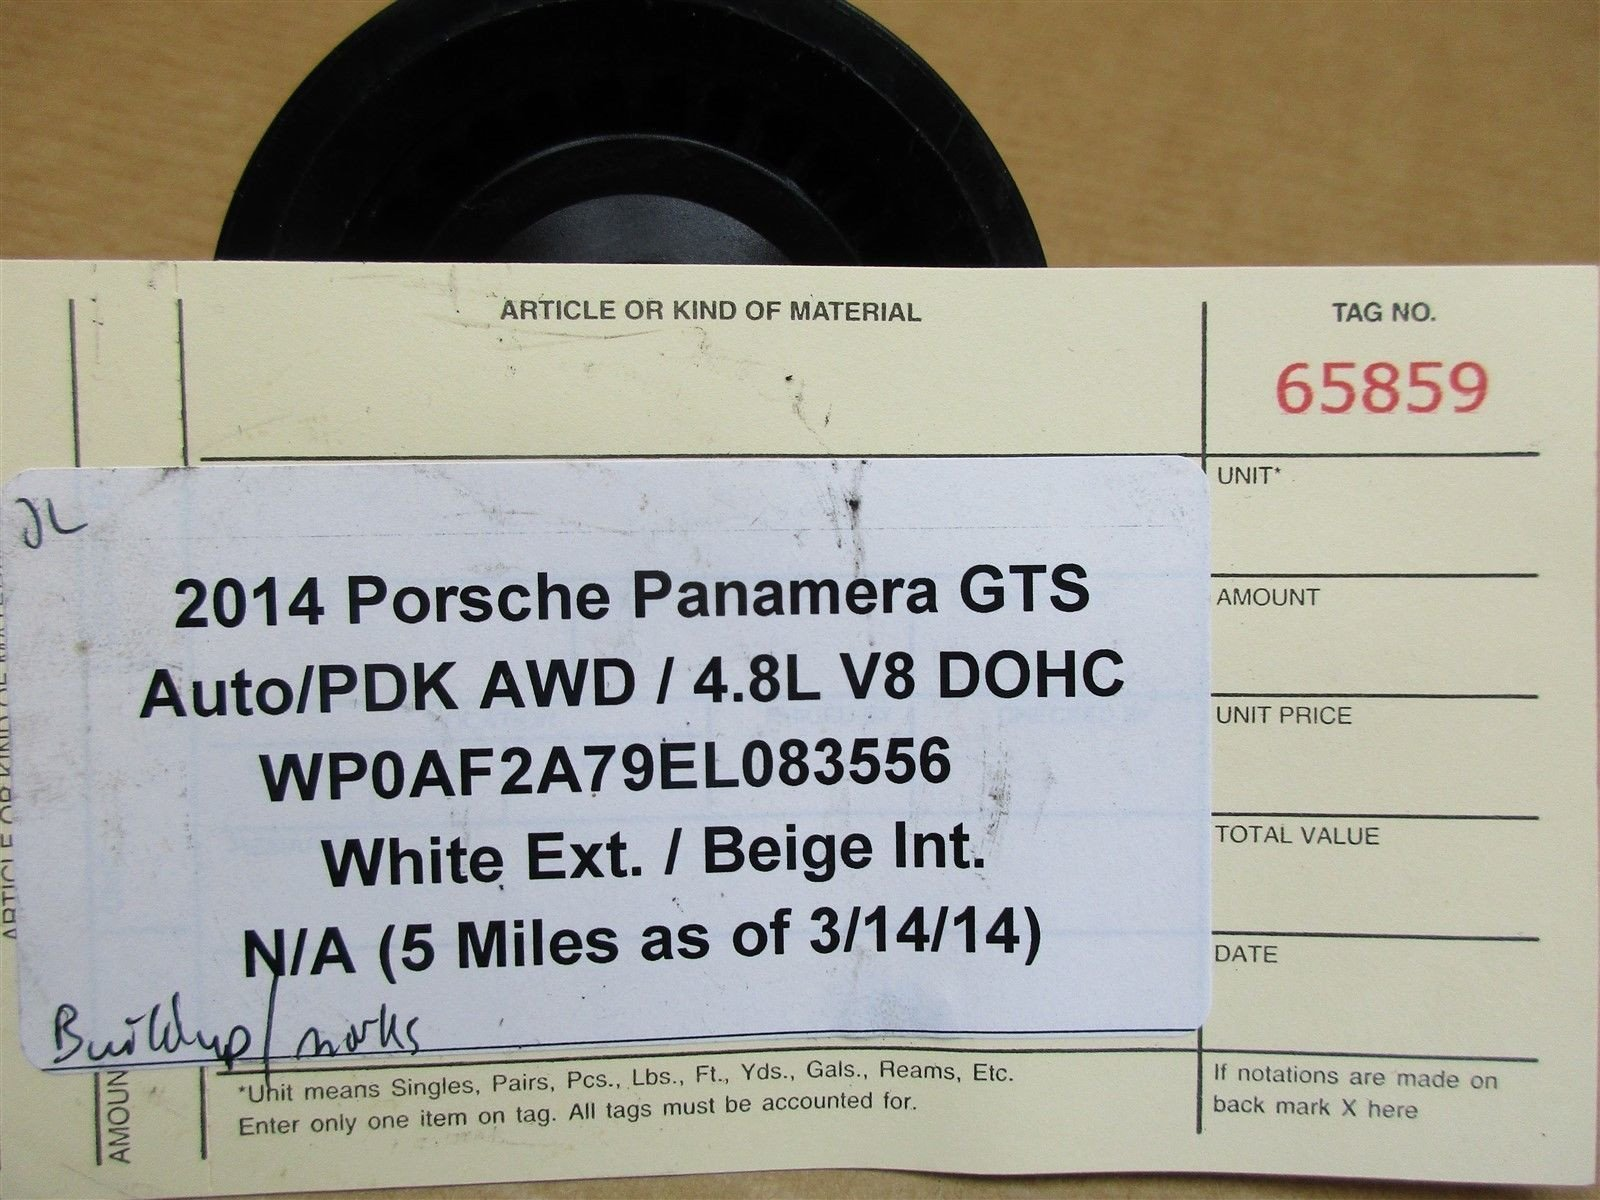 14 Panamera GTS AWD 970 Porsche Engine 4.8 PULLEY 5 N/A